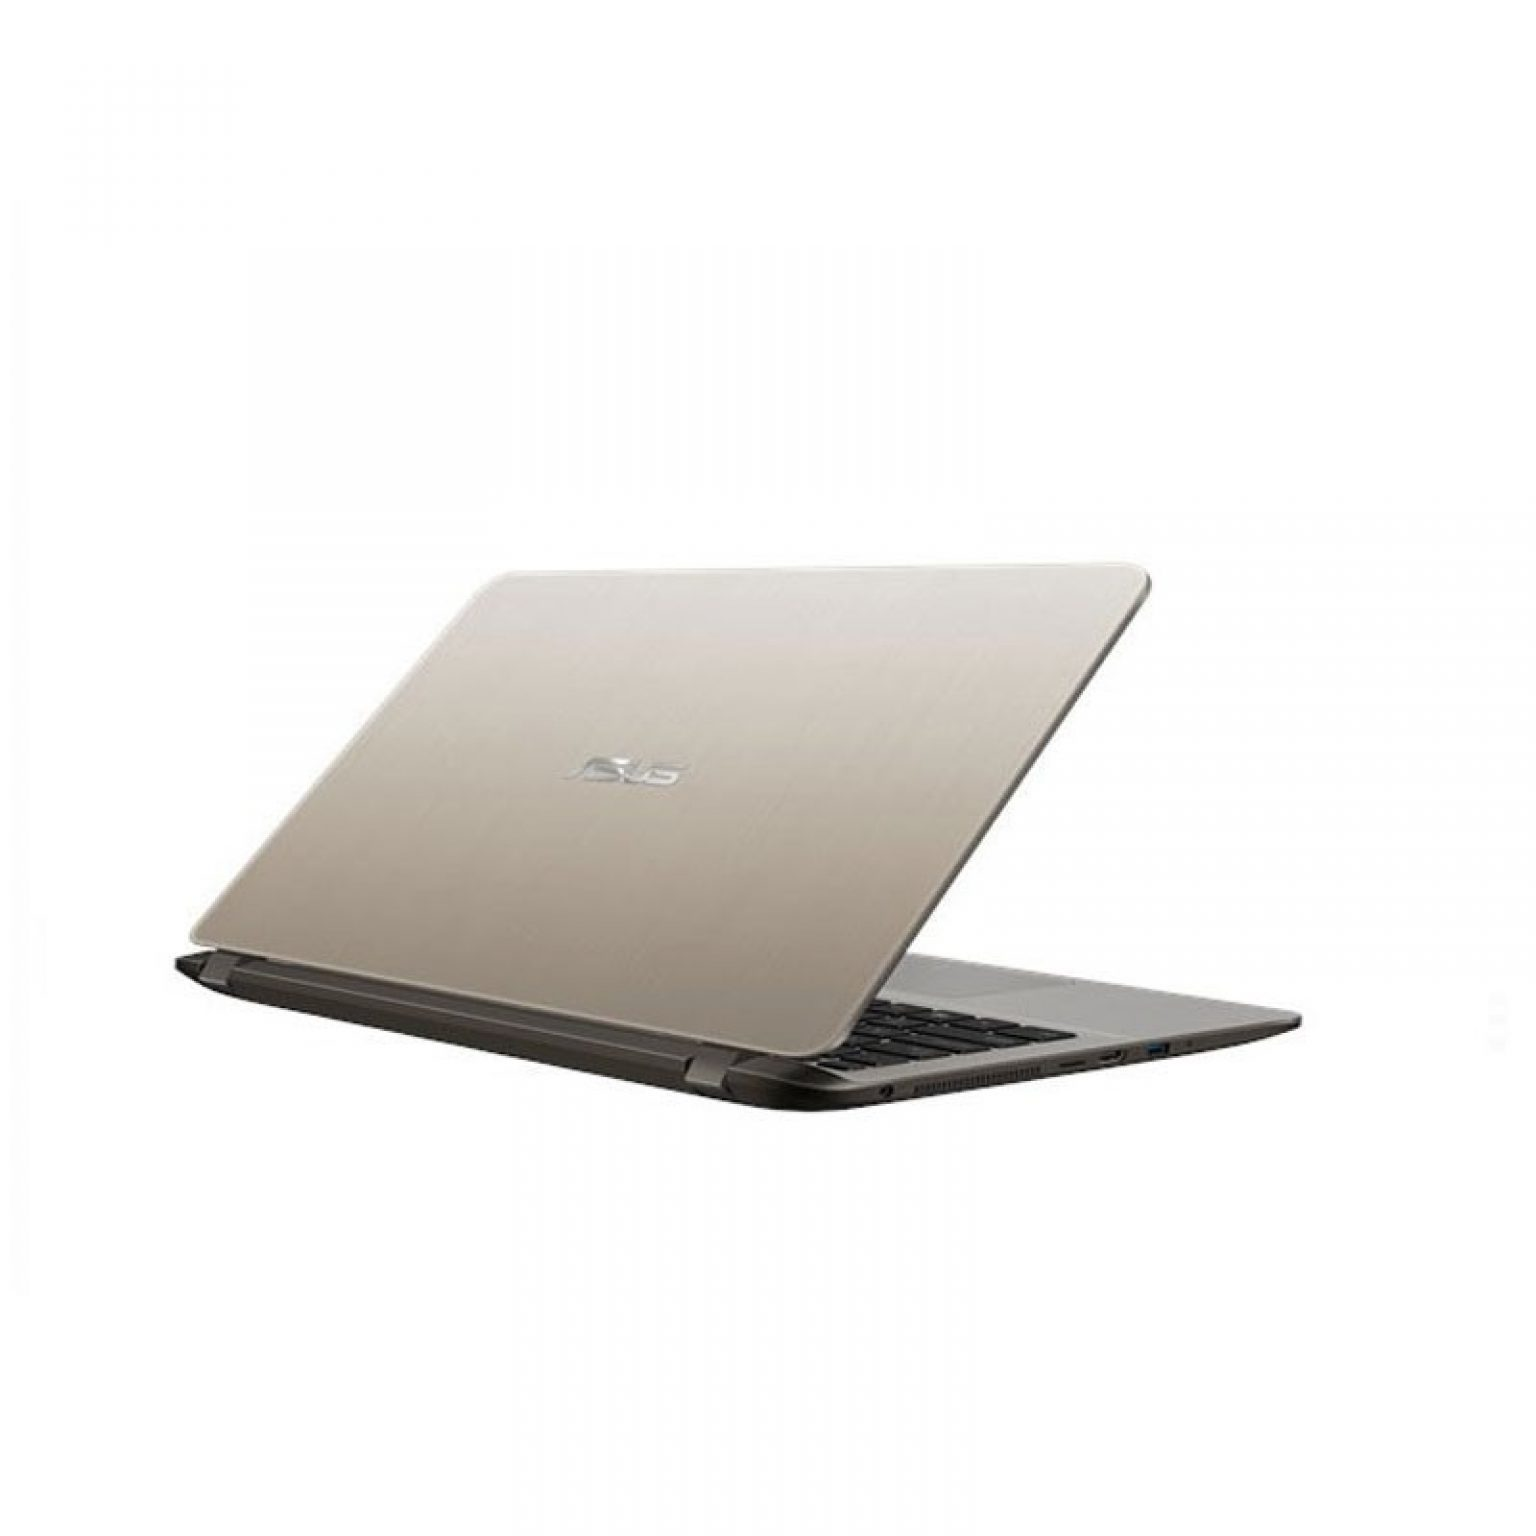 ASUS - A407UF-EB732T (i7-8550U/8GB RAM/1TB HDD/MX130/14inch/Win10SL/Icicle Gold)